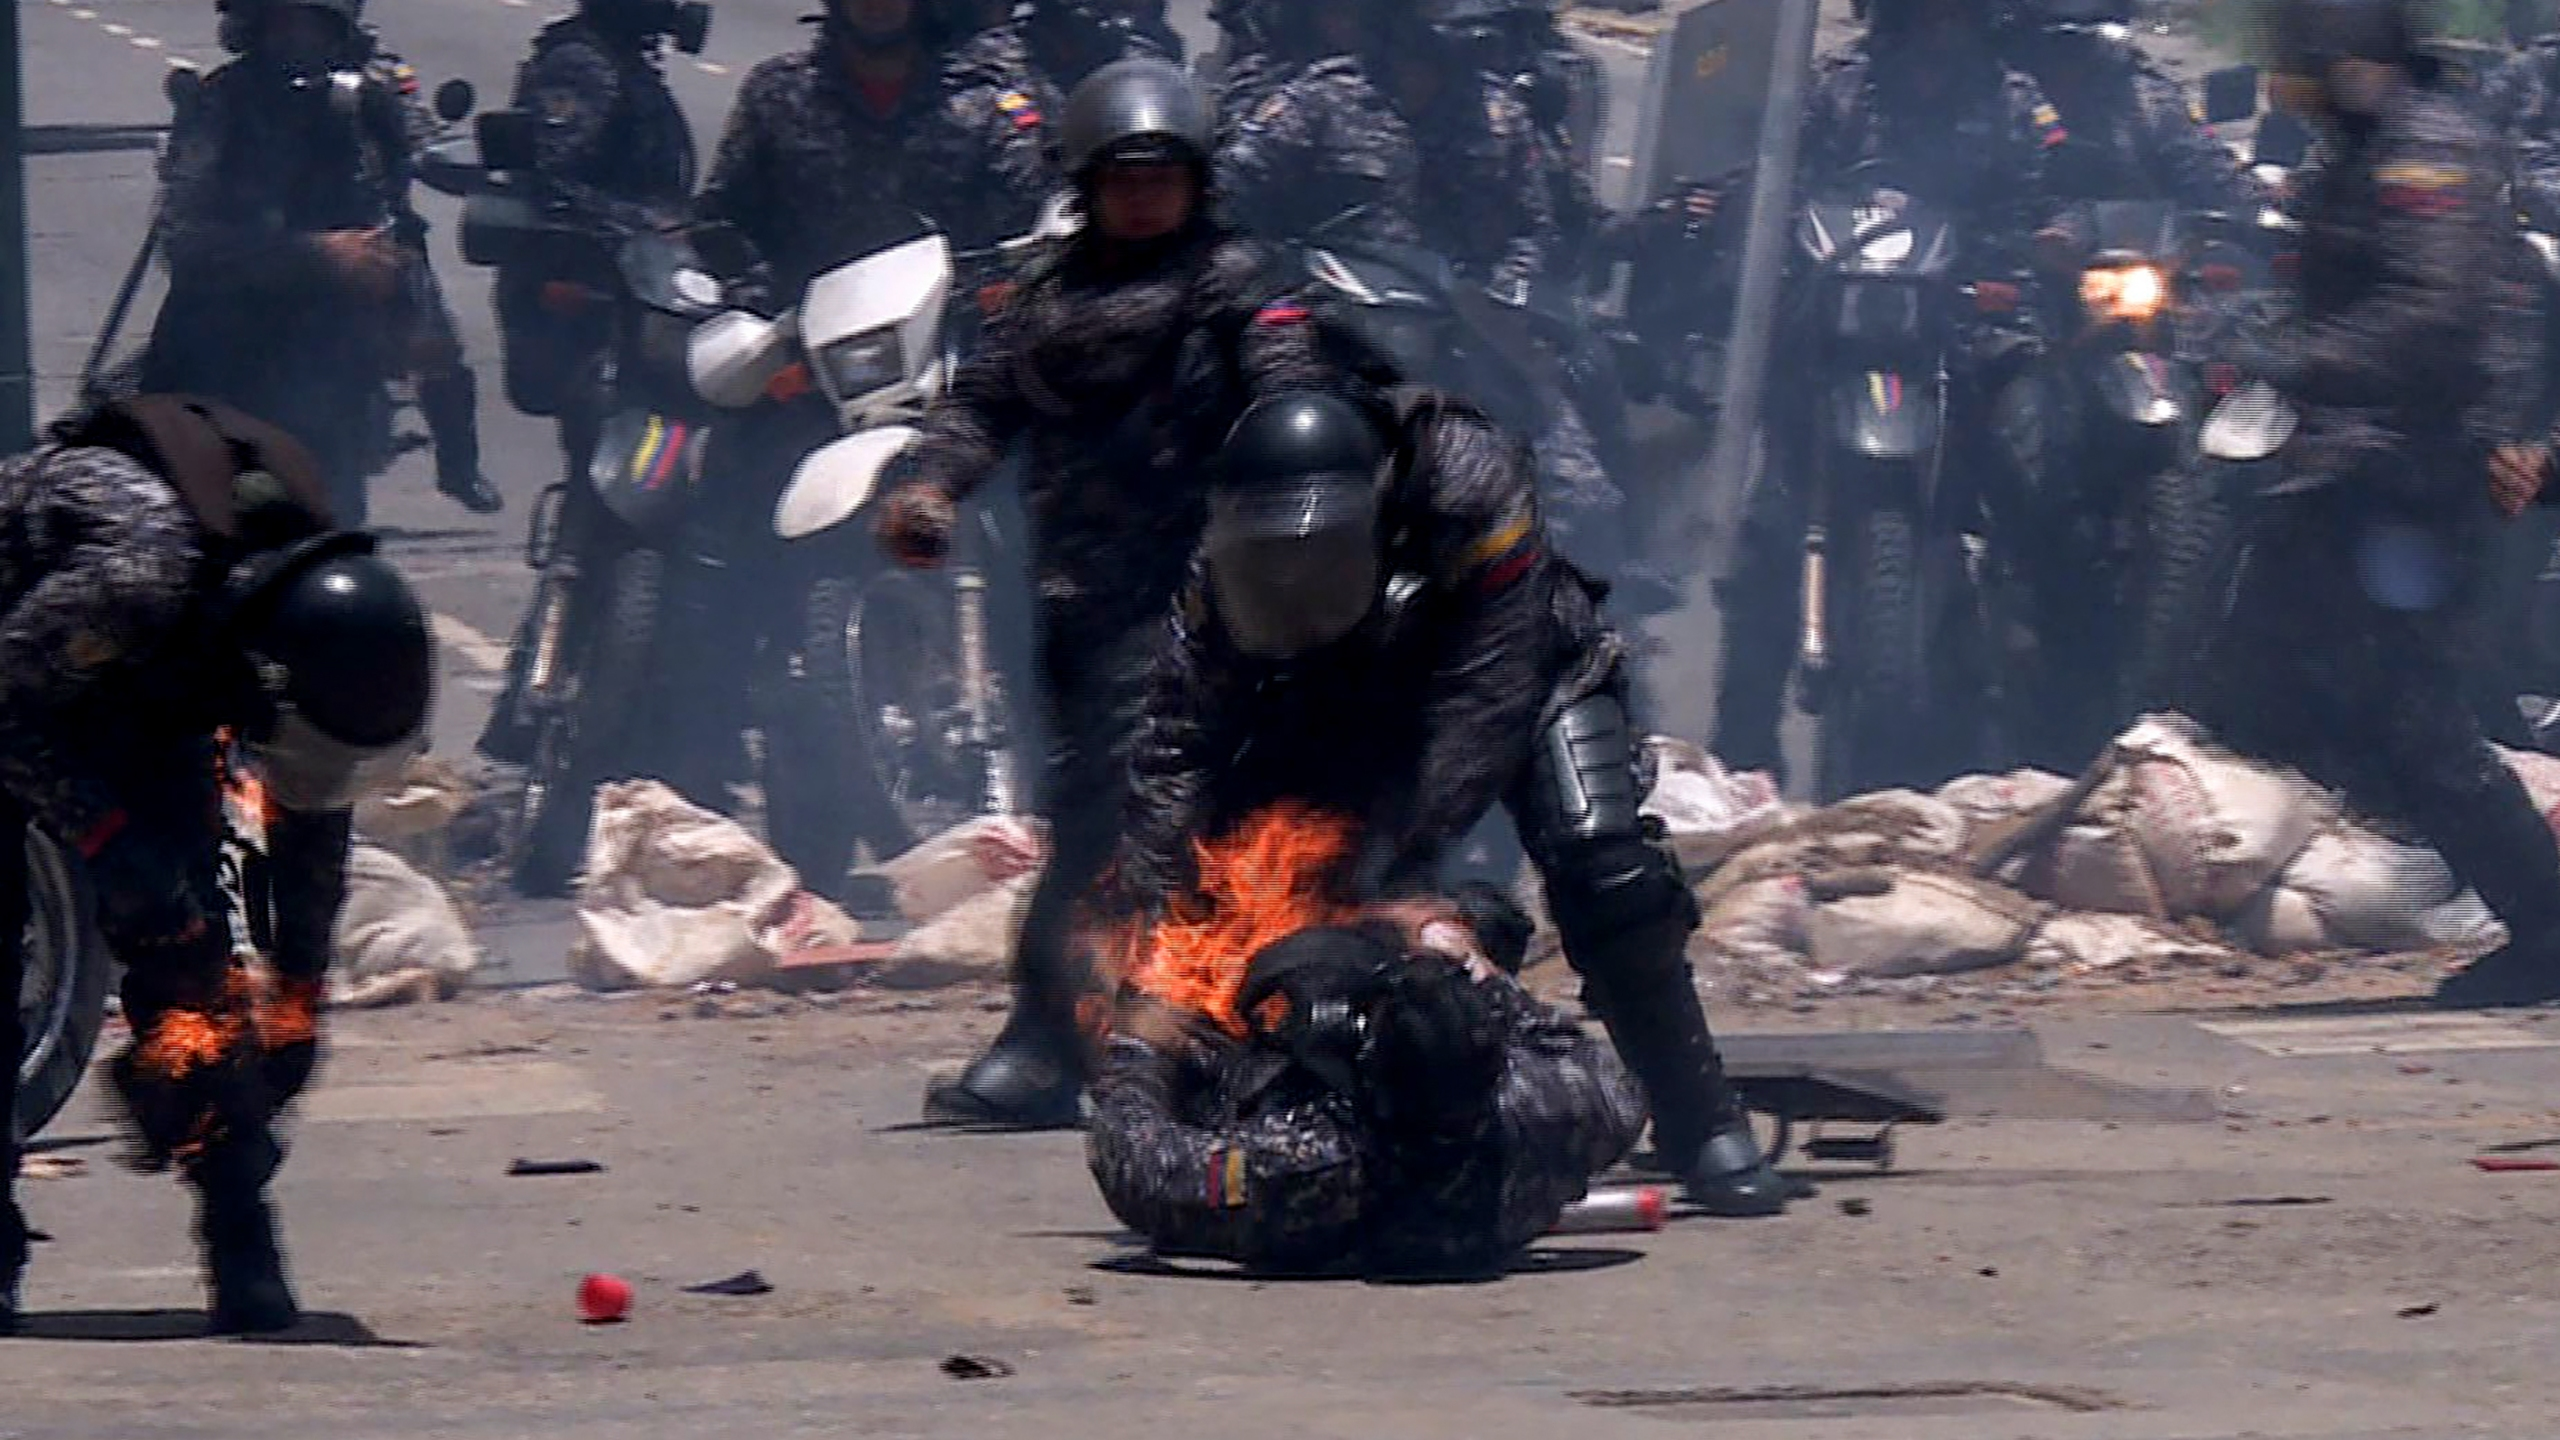 Video grab showing police officers helping a colleague who caught fire after an explosive device went off as they rode past during a protest against the elections for a Constituent Assembly in Caracas on July 30, 2017. (Credit: Leo Ramirez/AFP/Getty Images)